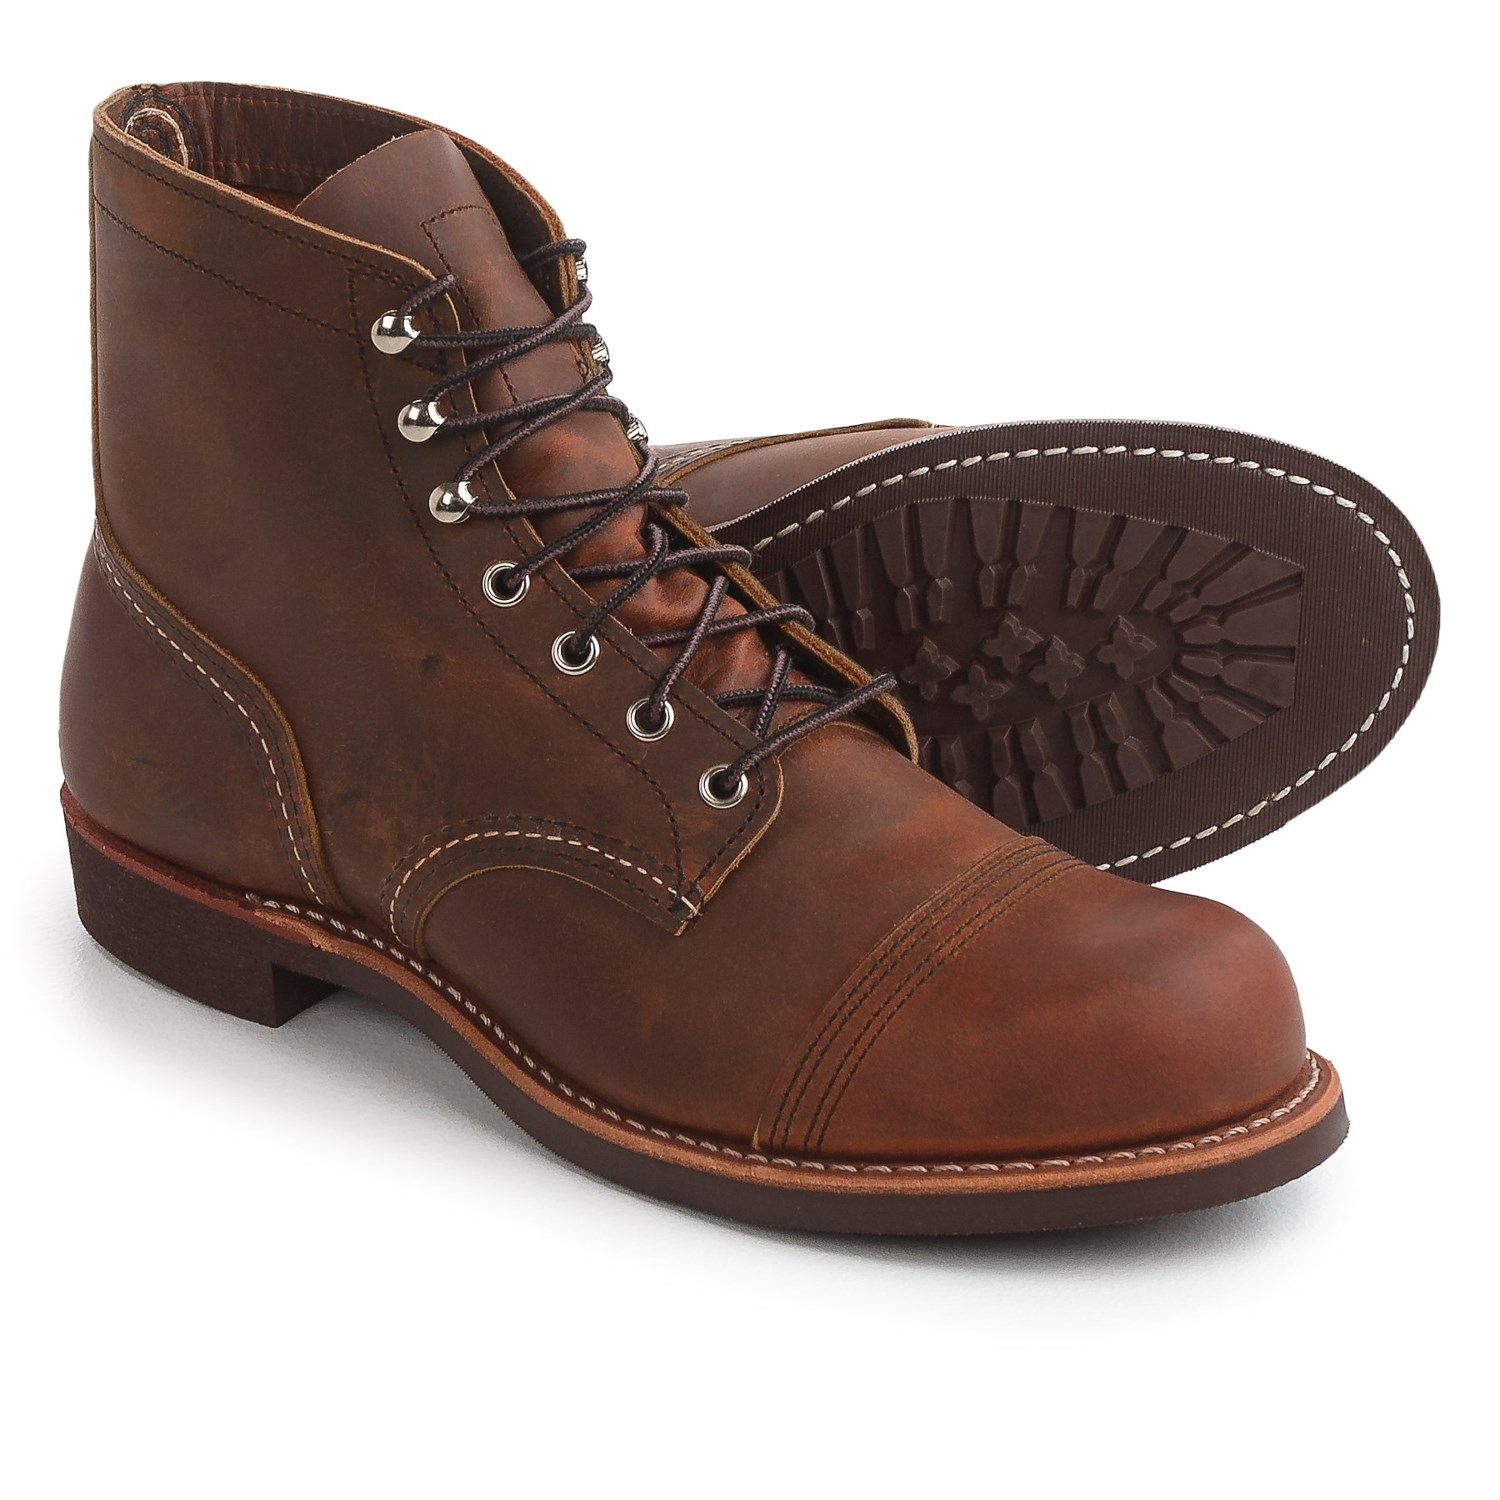 Red Wing Shoes Review